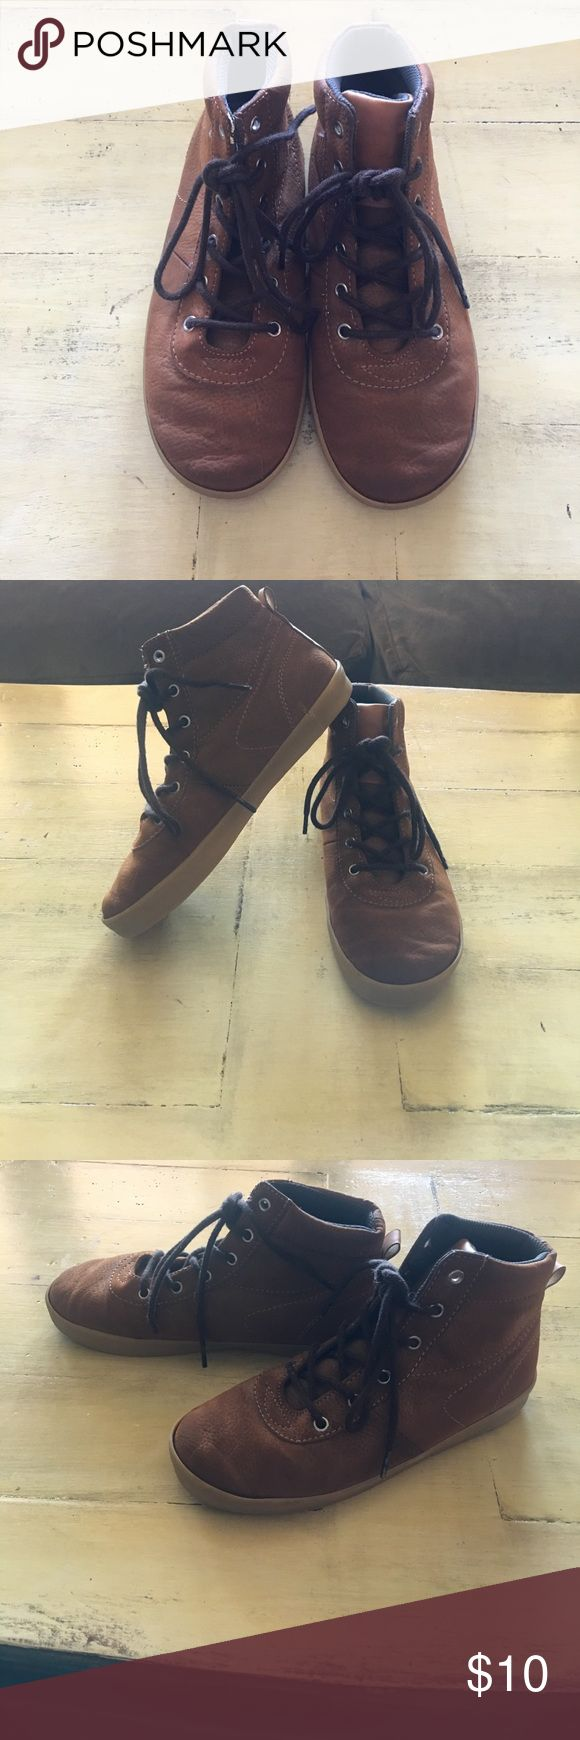 Brown ankle shoes for boys These shoes are in very good condition. Barely worn. Great dress shoes. Shoes Boots